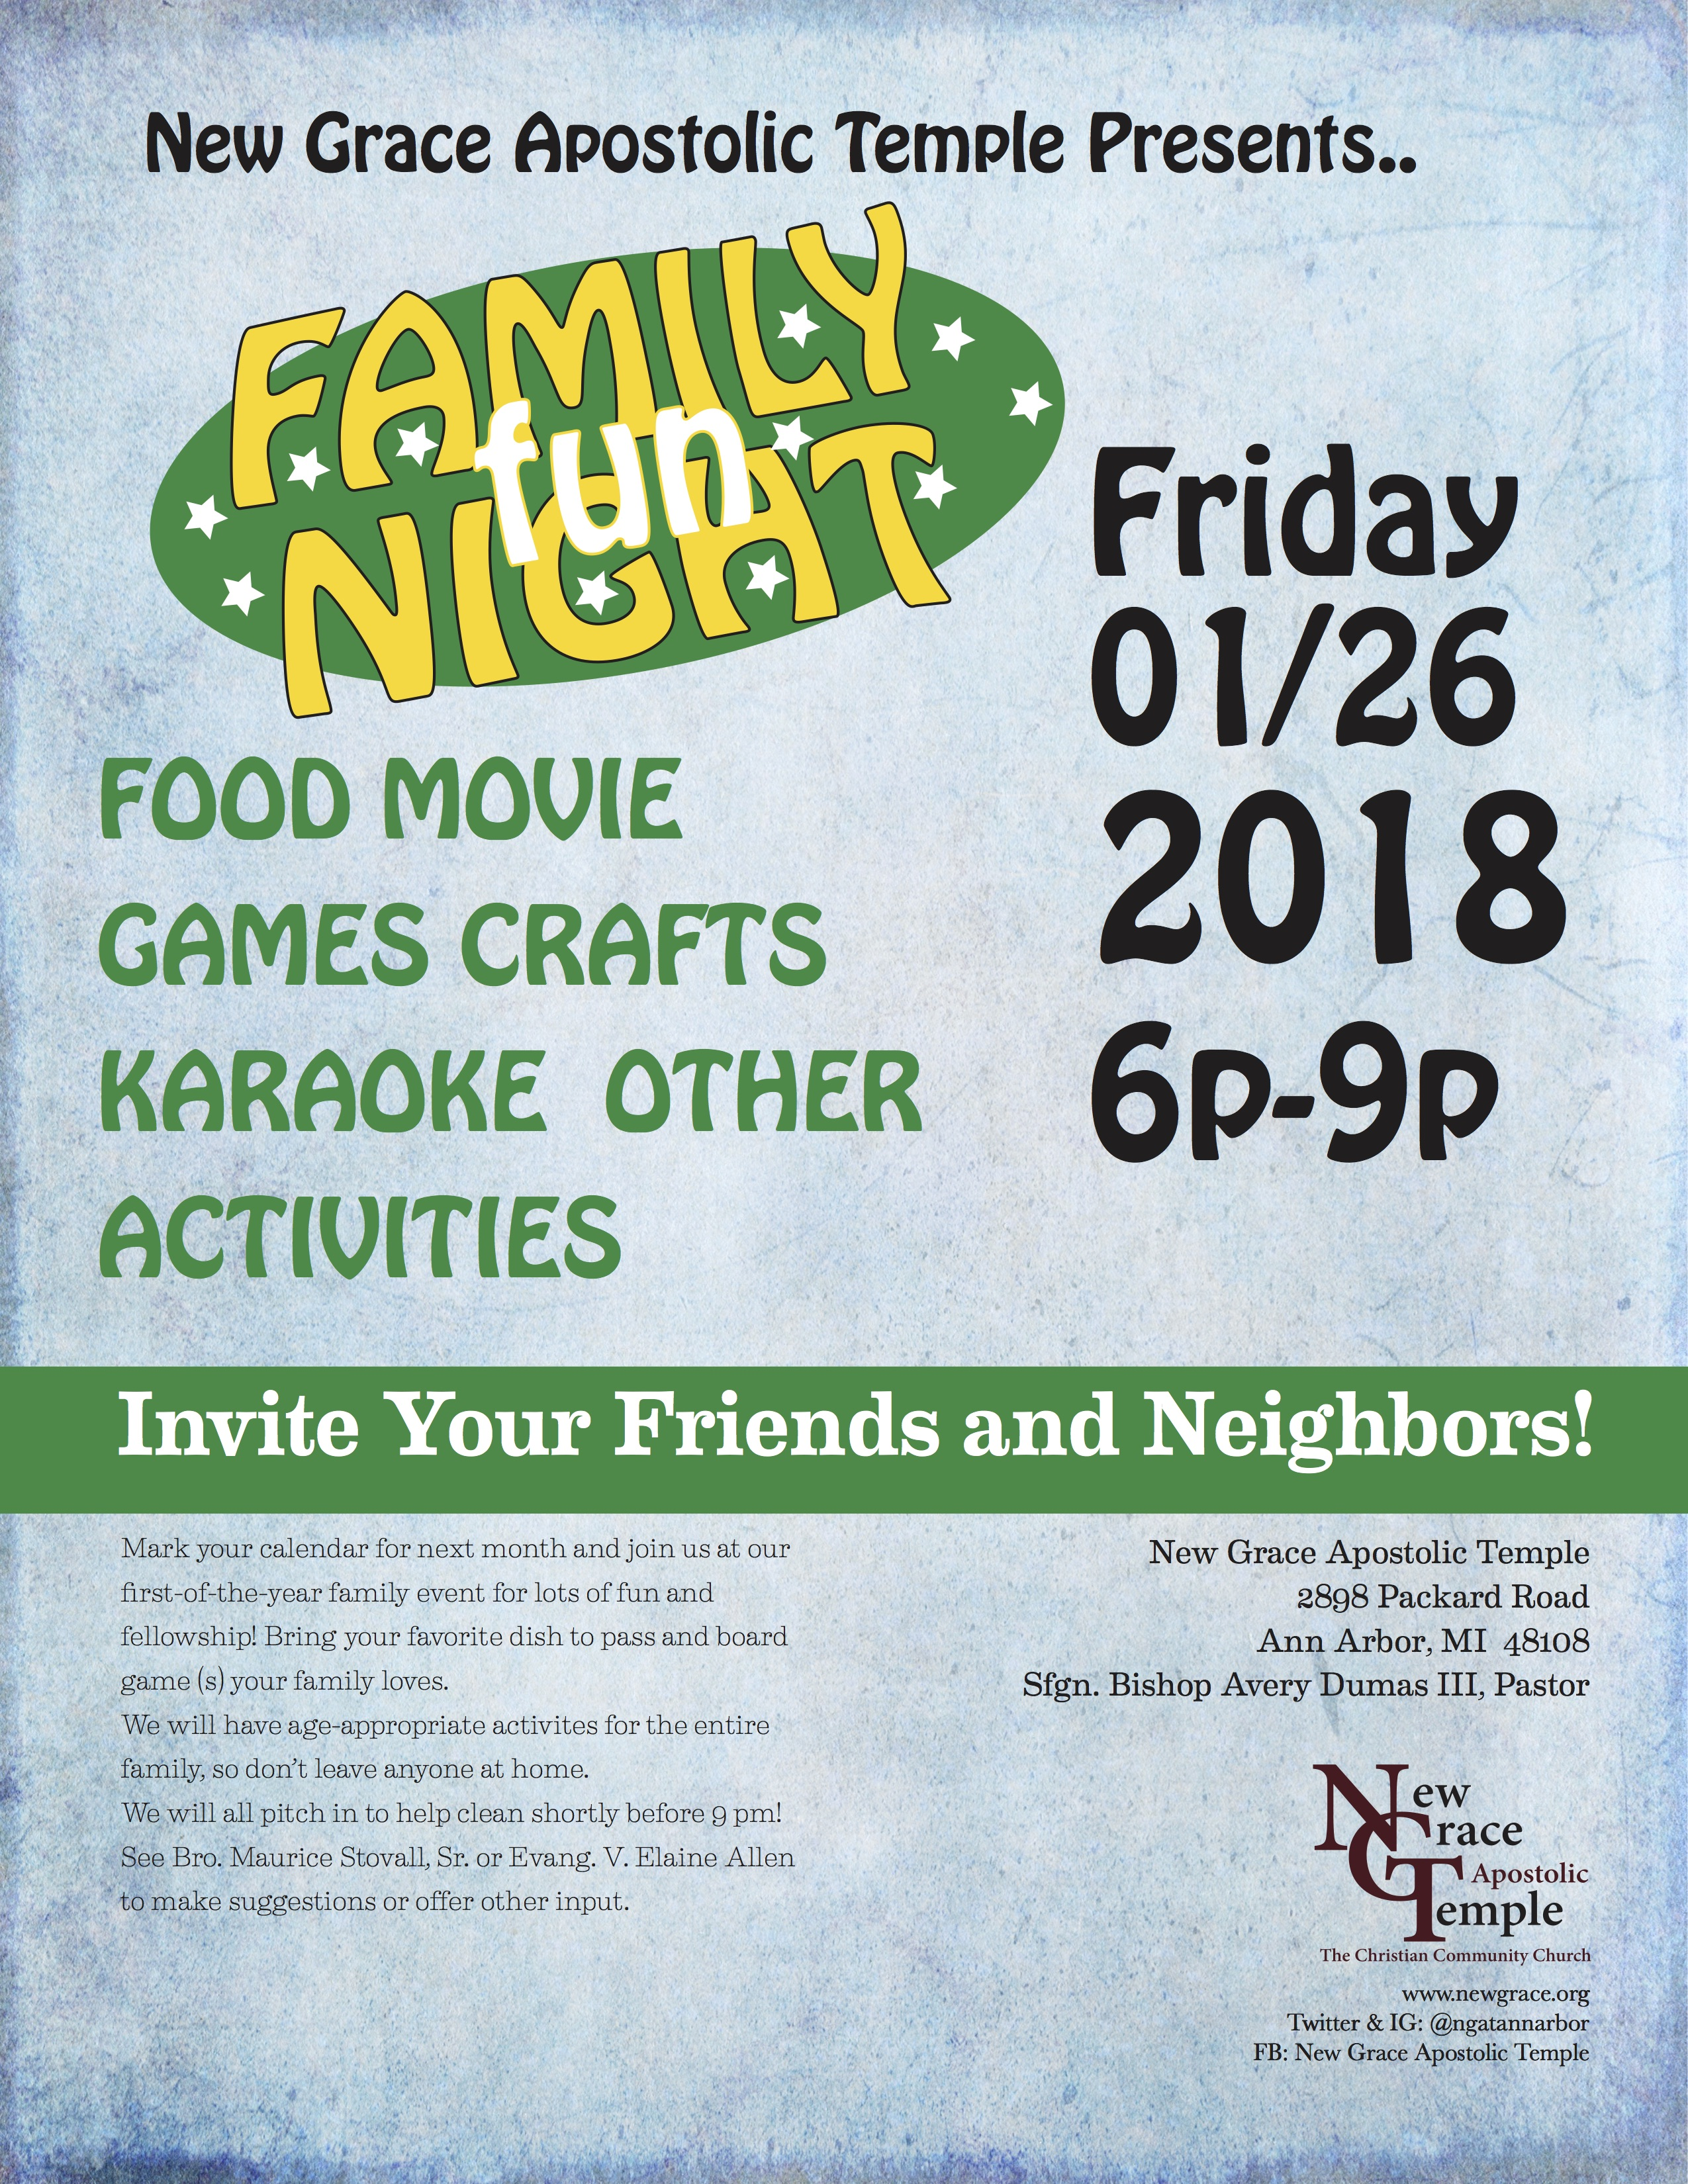 Mark You Calendar For Our Family Fun Night Of 2018 Friday January 26 From 600 Pm 900